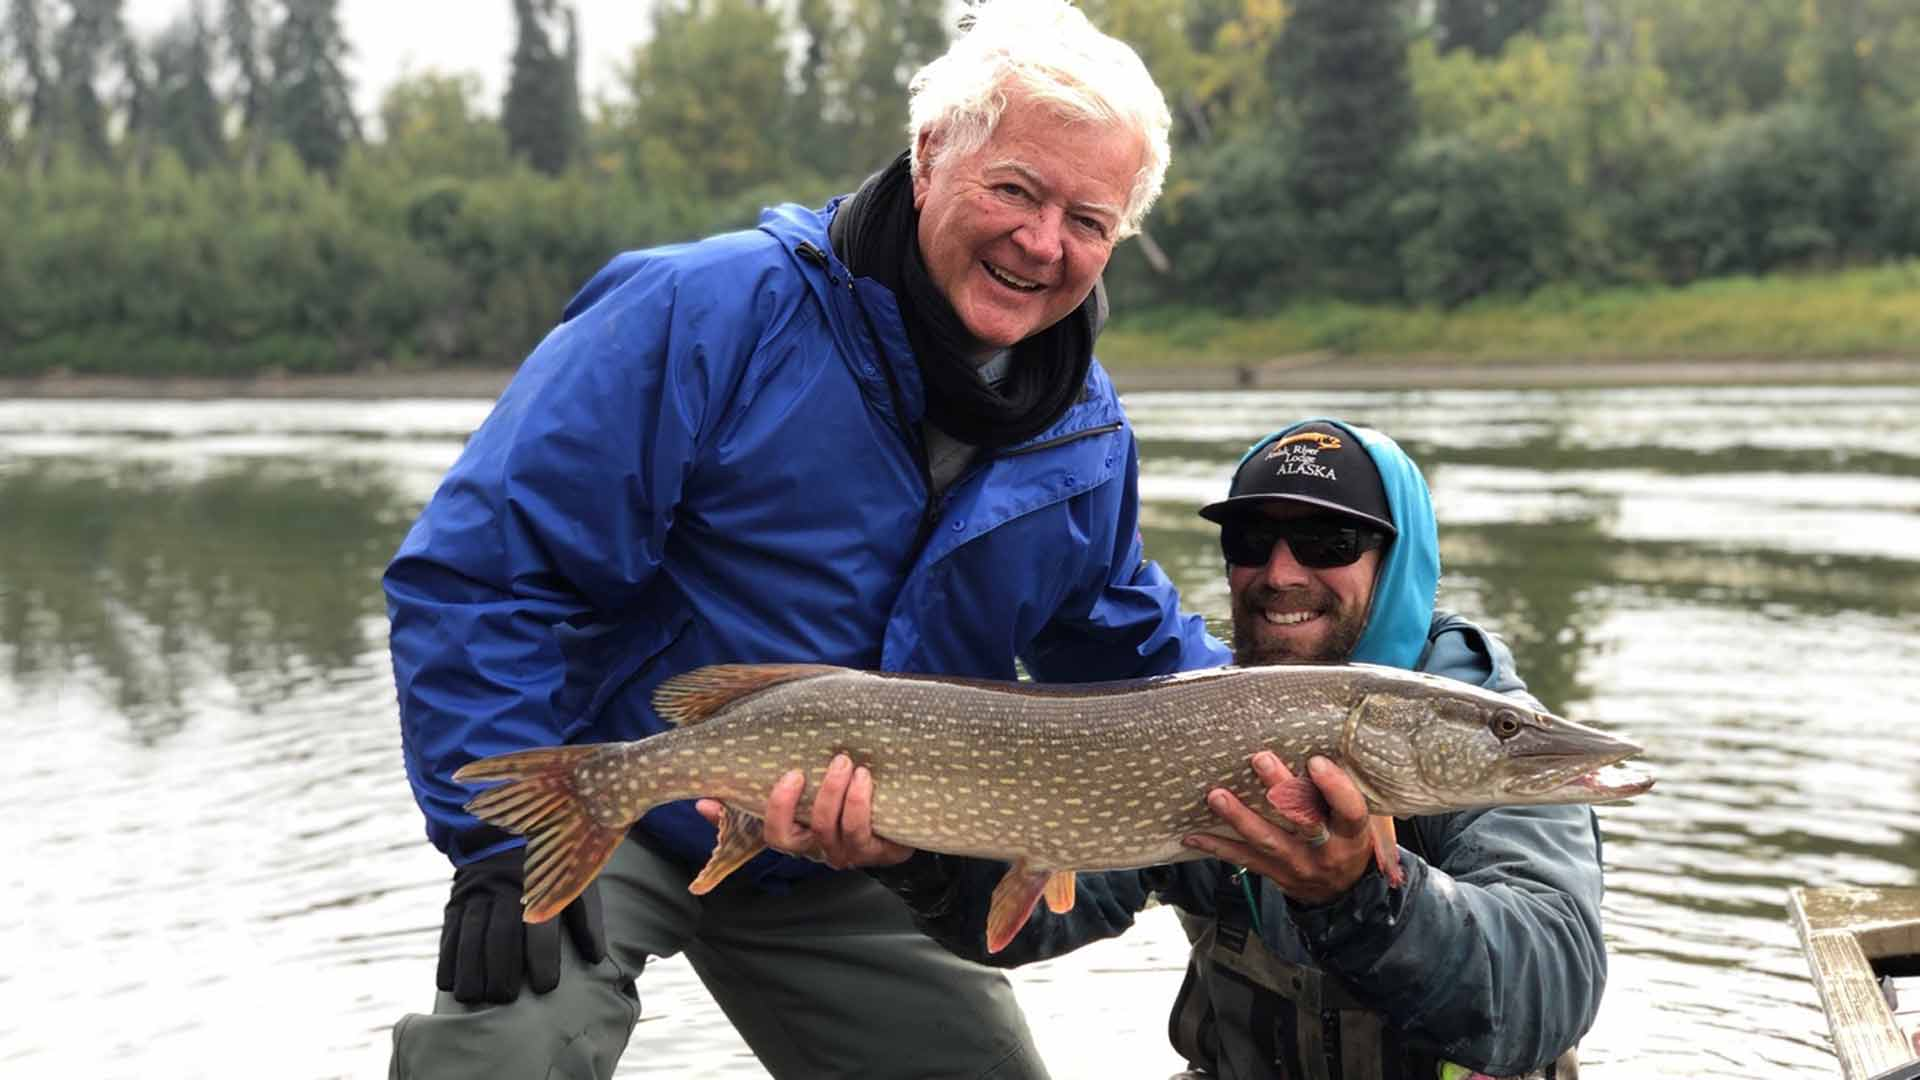 Guide holding up angler's northern pike